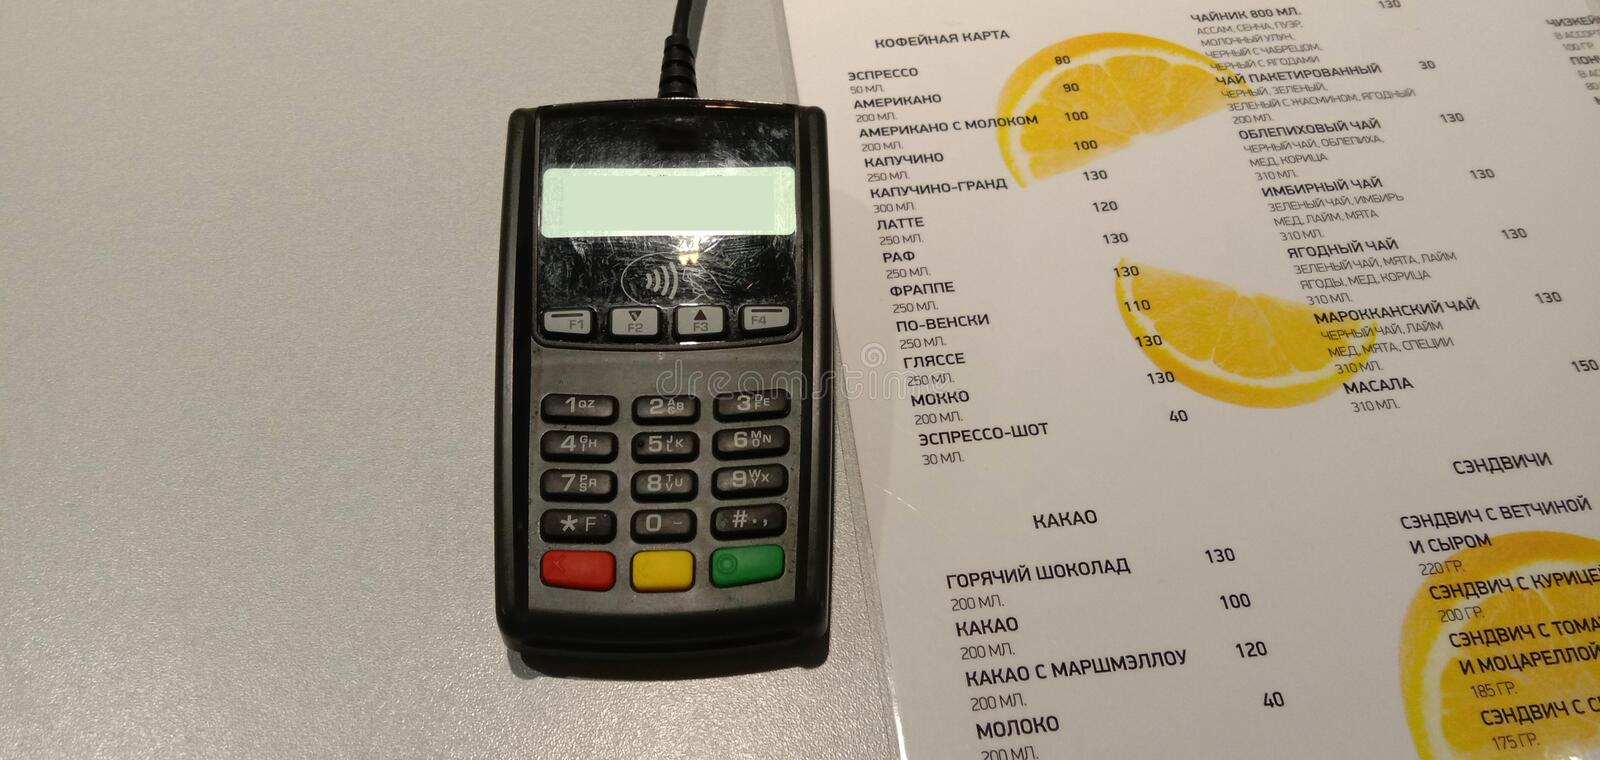 Cafe menu with prices and a list of drinks and a reader of electronic, payment cards. Close-up stock photo